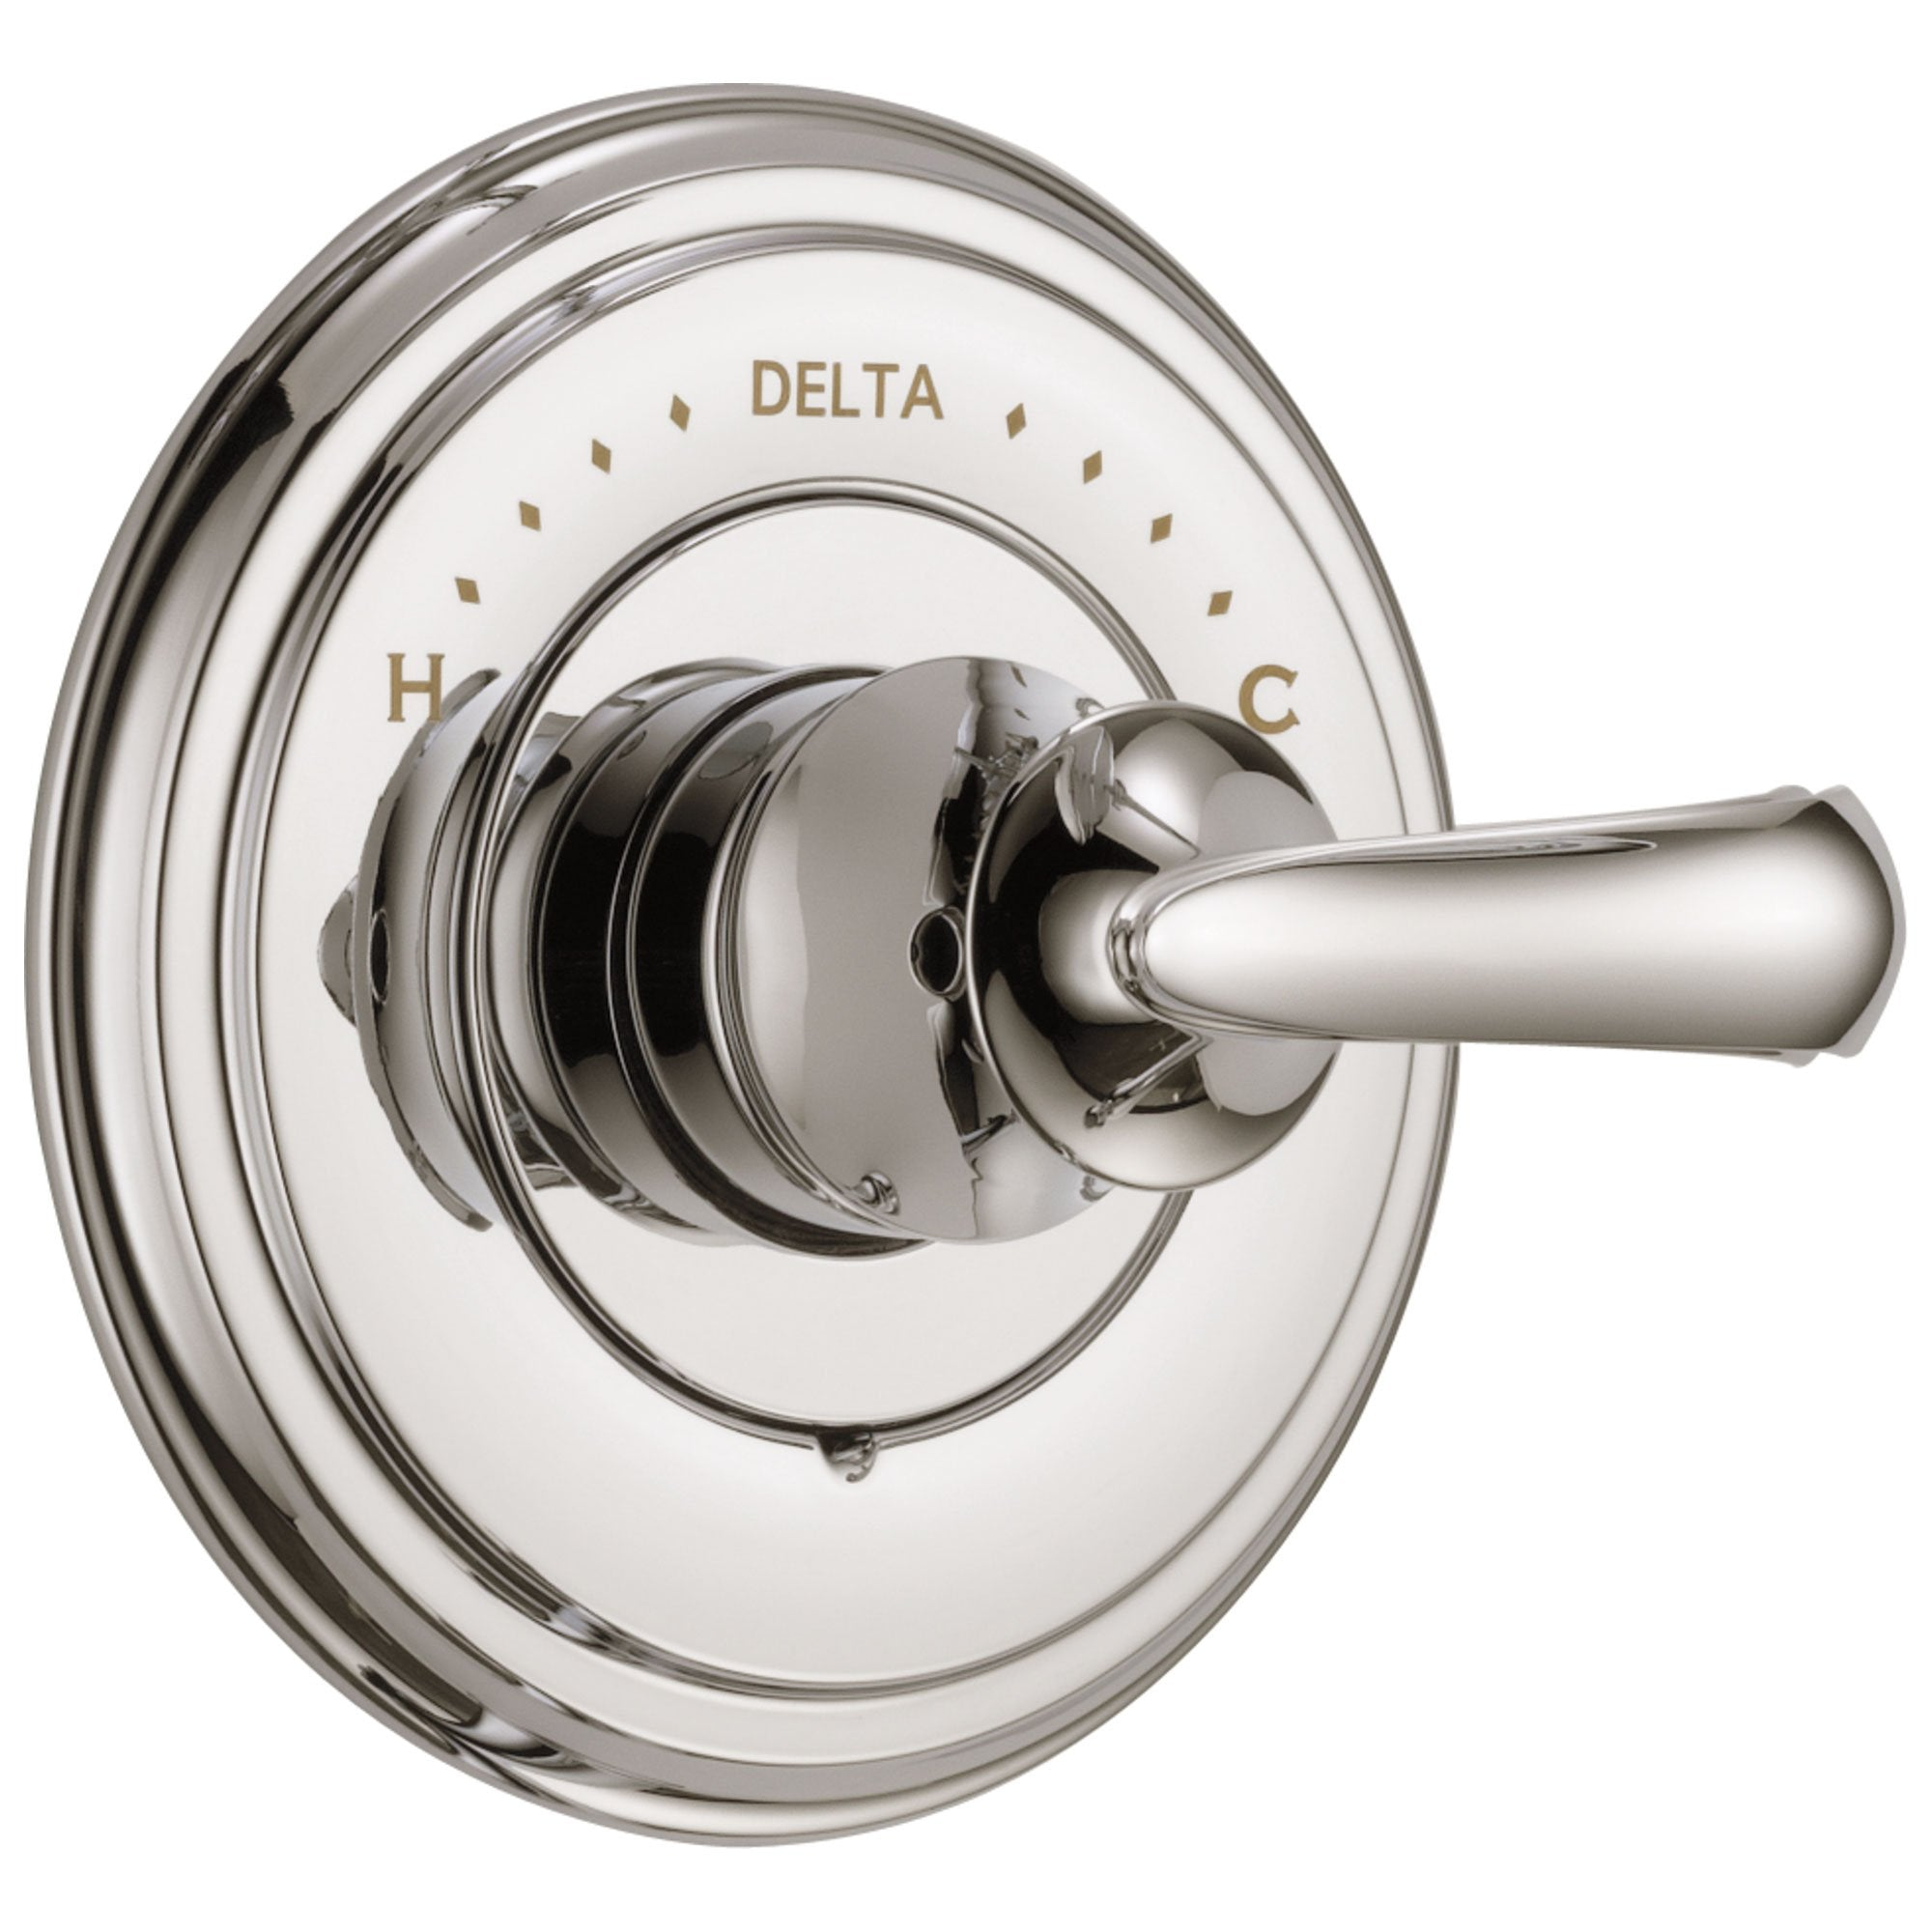 Delta Cassidy Collection Polished Nickel Monitor 14 Series Shower Valve Control Only INCLUDES Single French Scroll Lever Handle and Valve without Stops D1858V